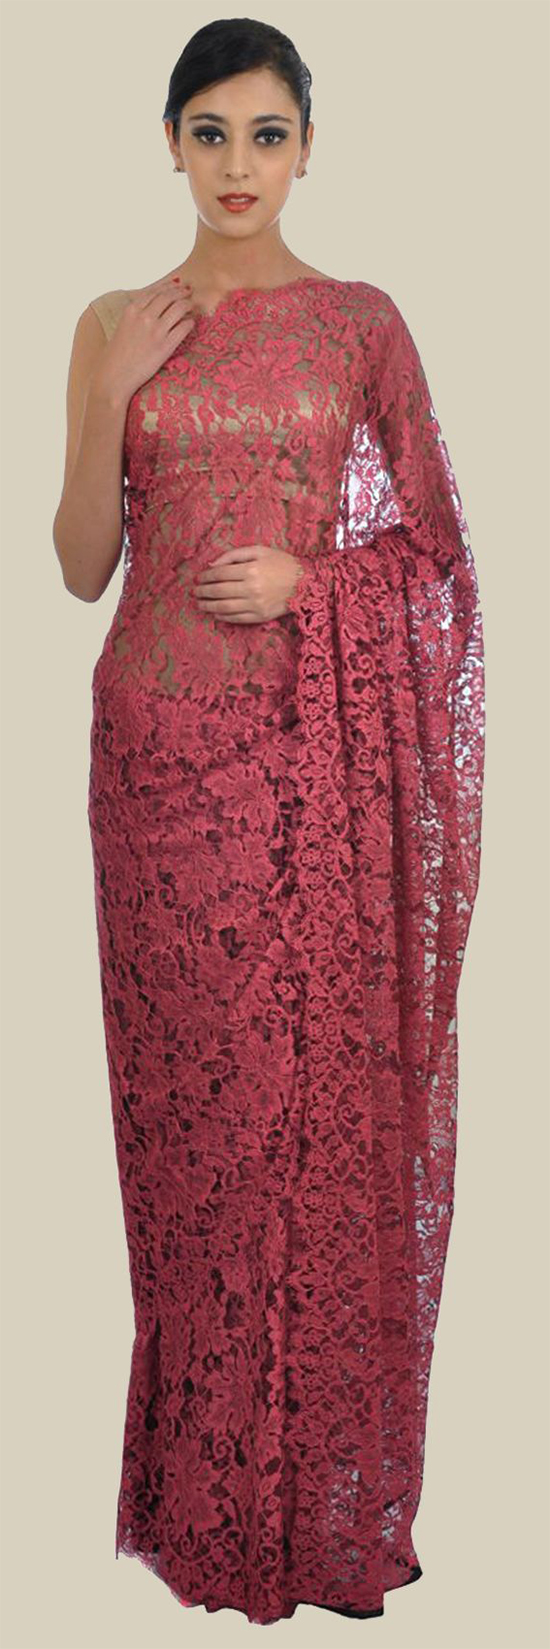 Top 20 trending chantilly lace saree designer collections cherry red french chantilly lace saree with crepe tissue blouse aloadofball Gallery